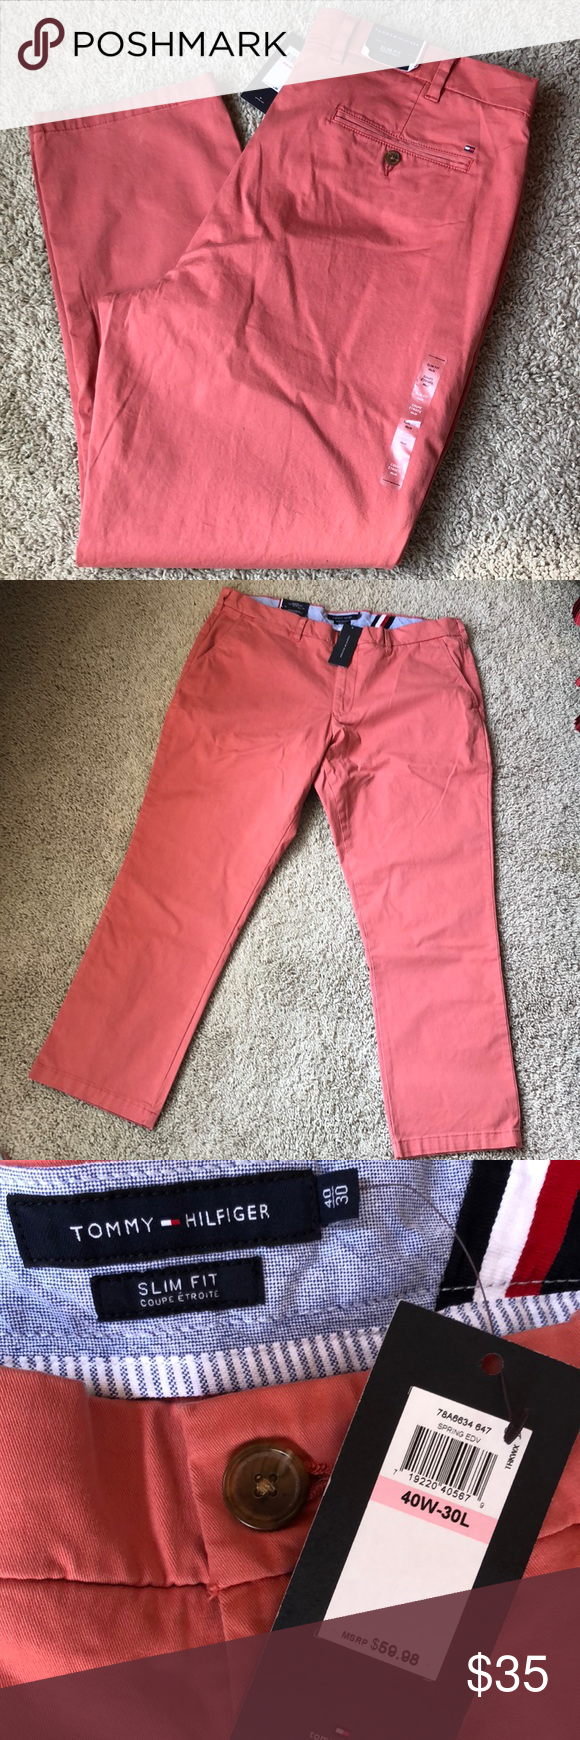 "36ccff37f Tommy Hilfiger Slim Fit Chino Slim fit Coupe Etroite chino in color  ""Spring"" which isn't all that helpful but pics are pretty true to the color."